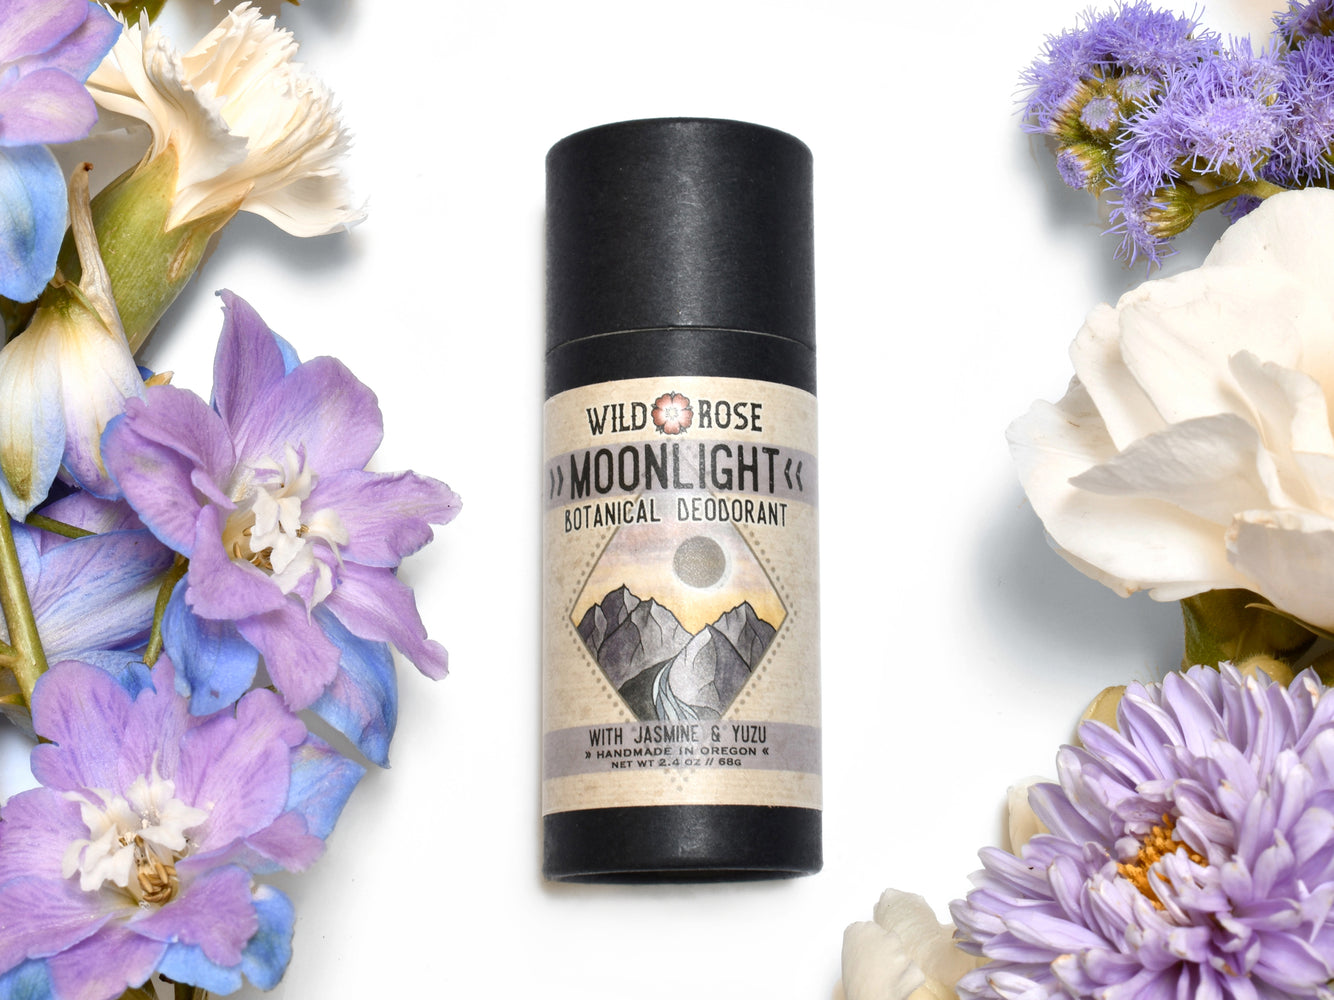 Moonlight - Botanical Deodorant